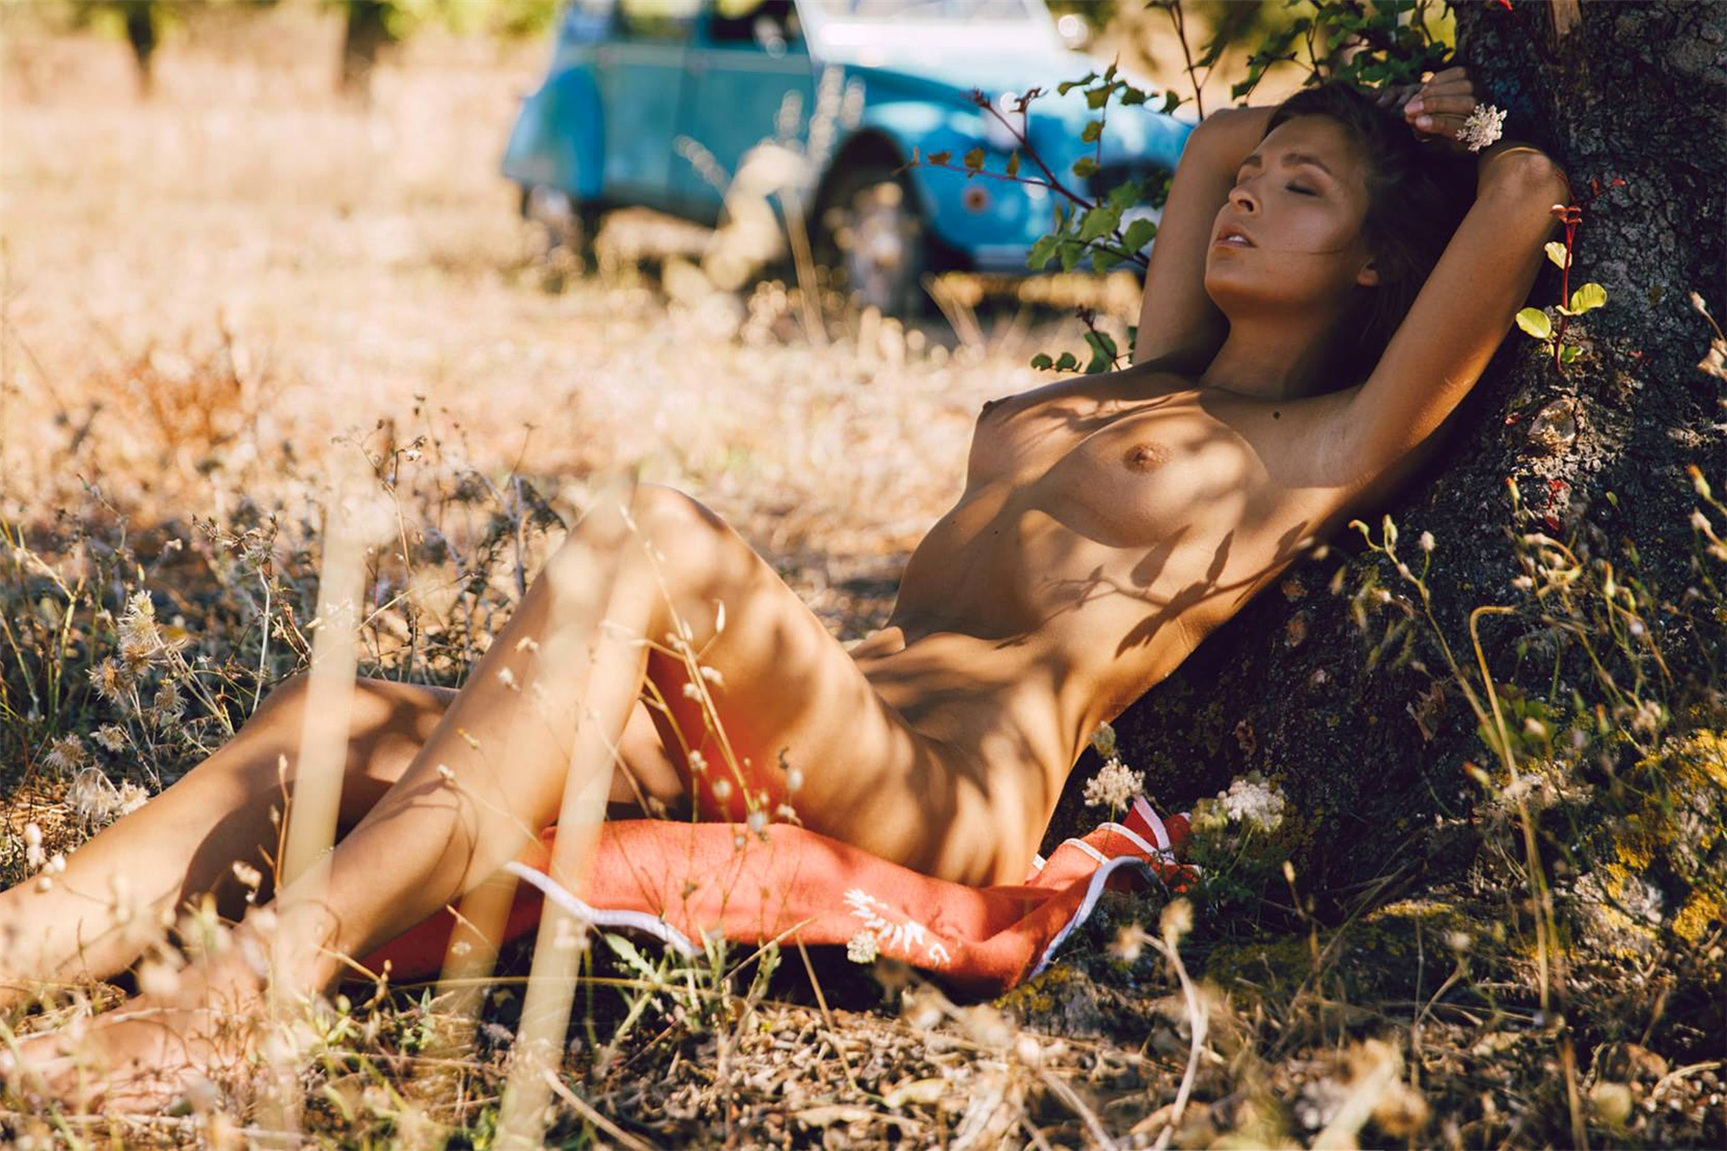 на природе с Марисой Папен / Marisa Papen nude by Jörg Billwitz - French Picnic